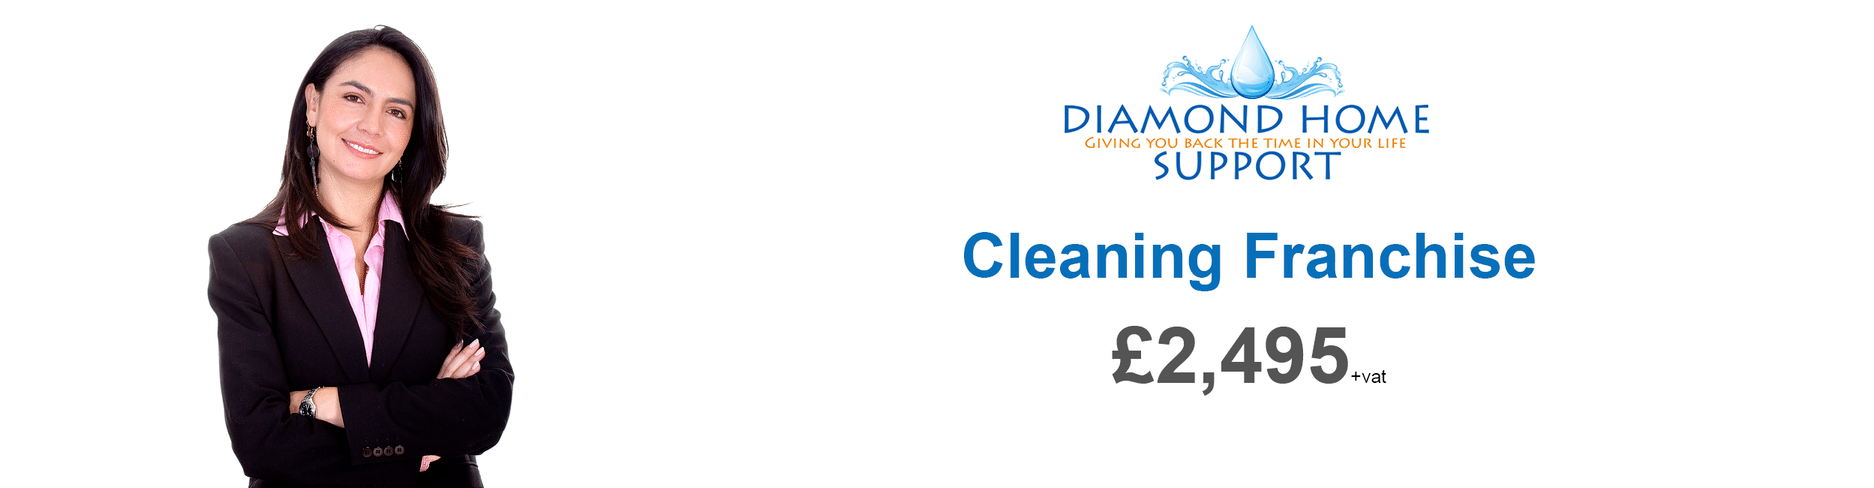 Diamond Home Support Domestic Cleaning Franchise News